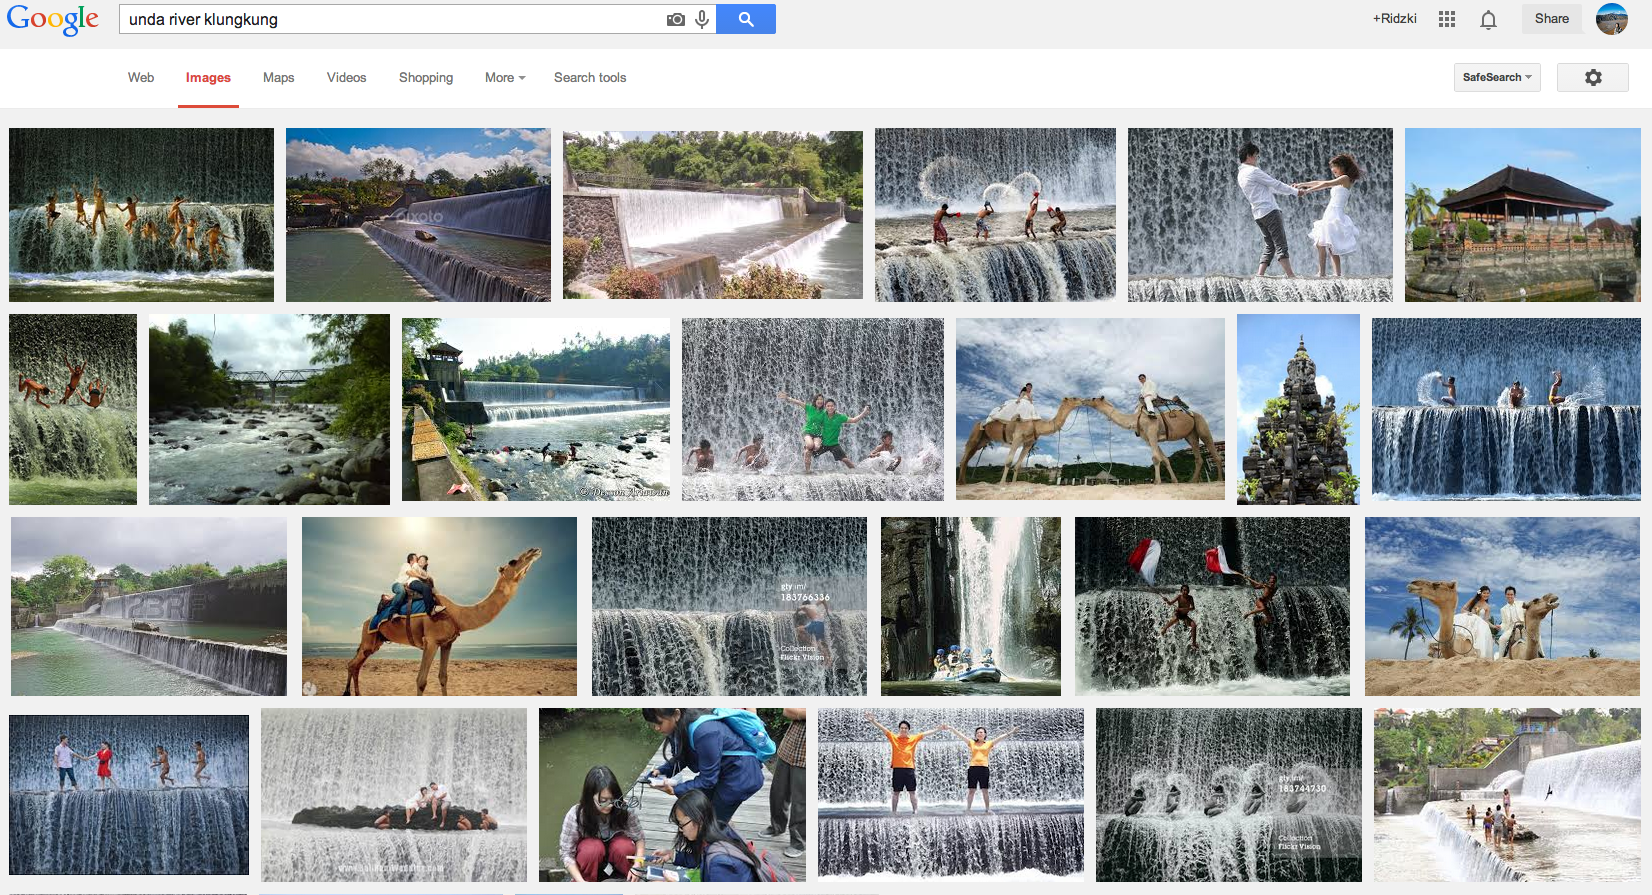 Google Image Search Results for Unda River Klungkung